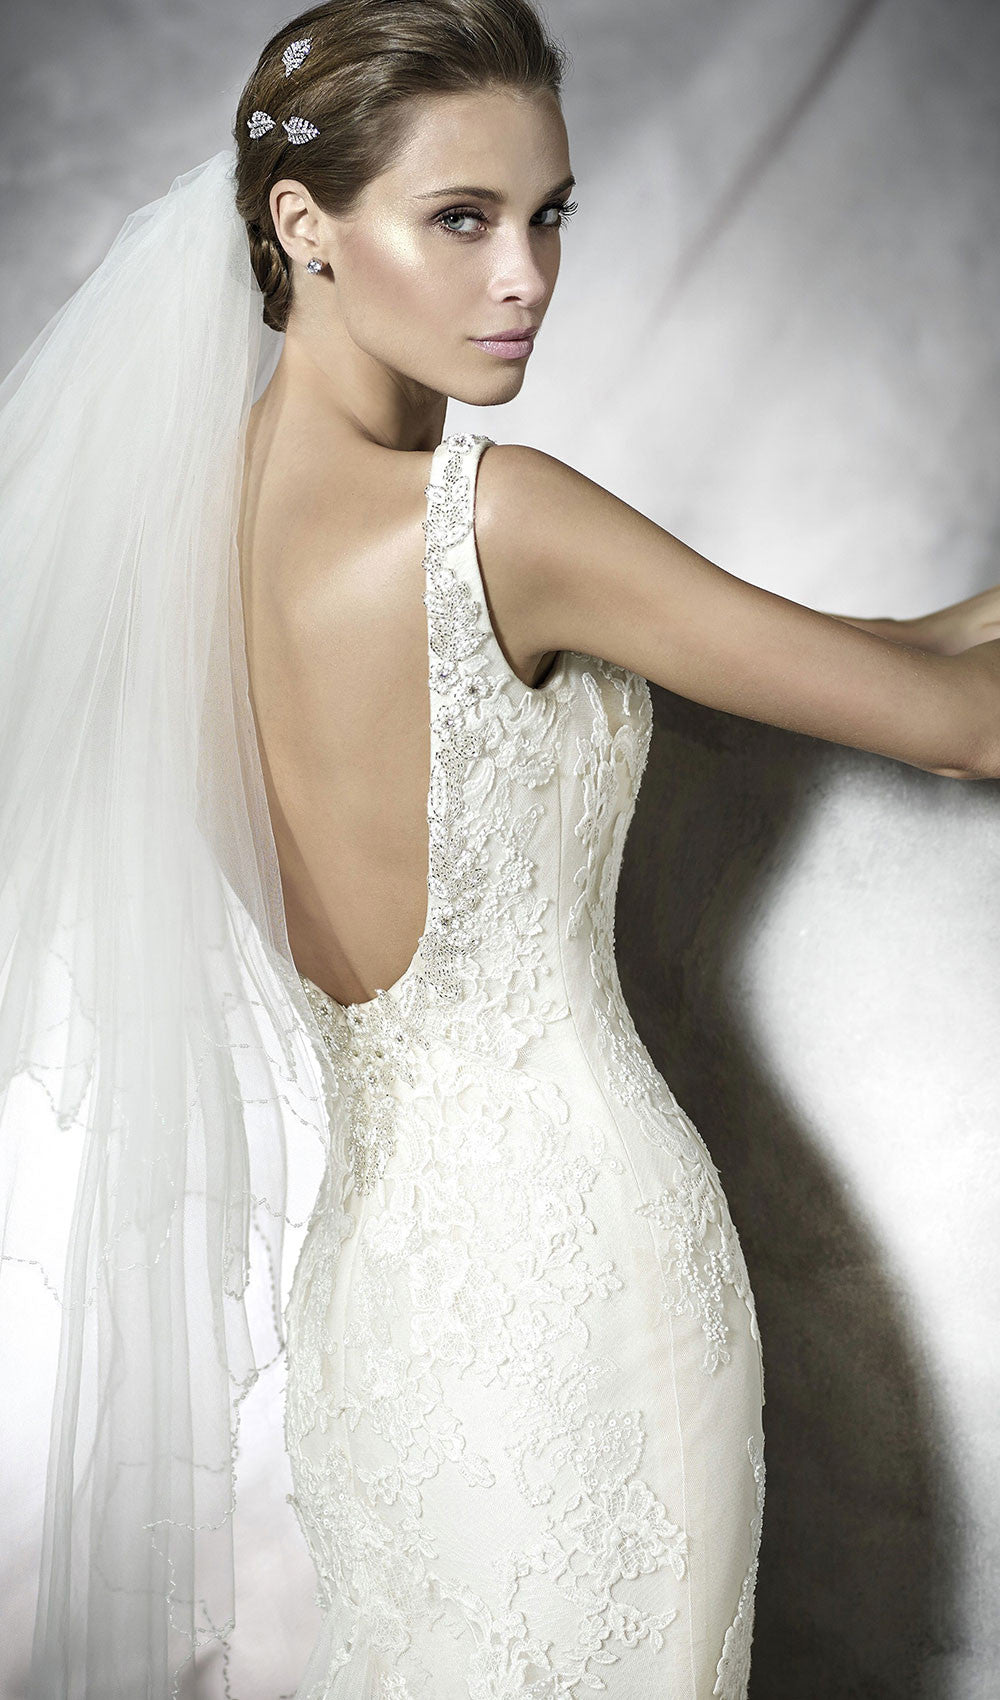 Pronovias - Style PROSA |Schaffer's Bridal in Des Moines, Iowa and Scottsdale, Arizona